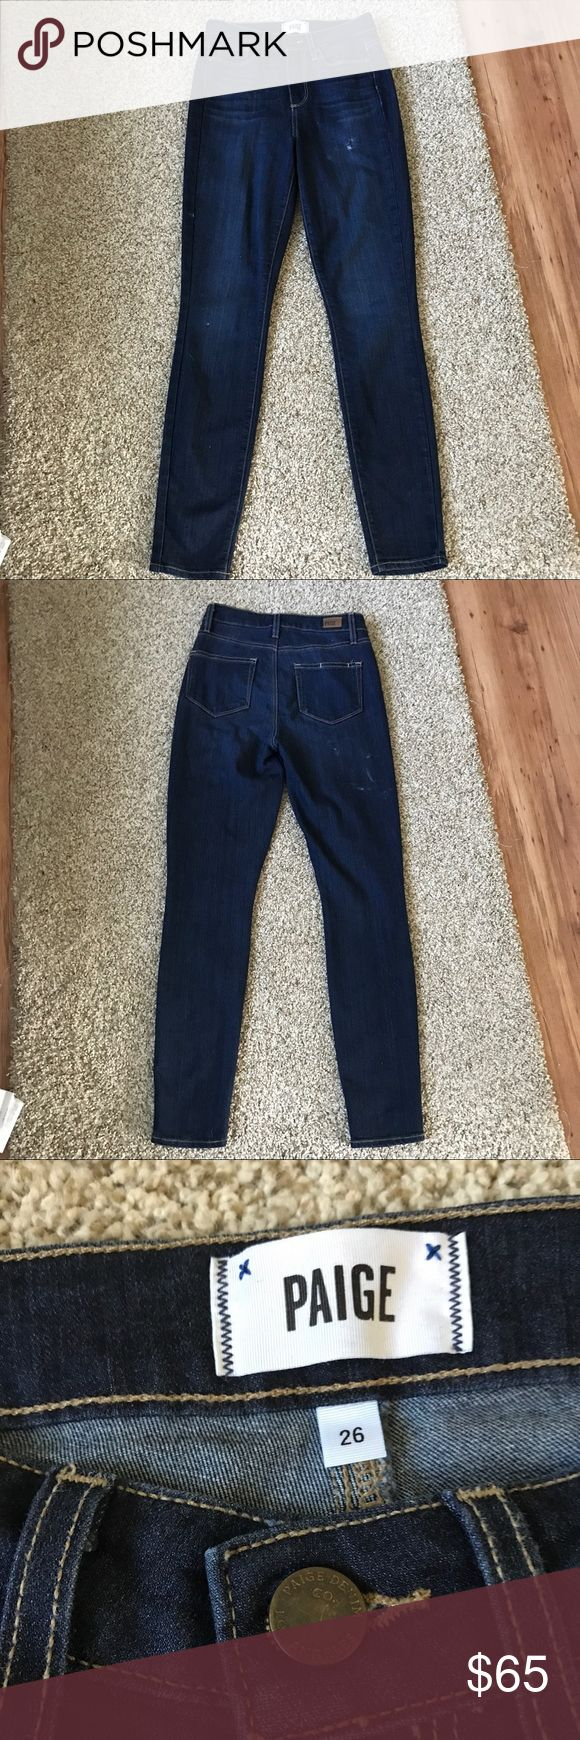 """PAIGE Denim Margot Ultra Skinny Alanis Dark Jeans Paige Denim Margot Ultra Skinny Alanis Jean in size 26. Jeans have some distressed details on the front and back. made in the USA. 📏 Measurements: 29"""" inseam, 10"""" rise, 13"""" across waist. ❣️ REASONABLE offers are accepted! PAIGE Jeans Skinny"""